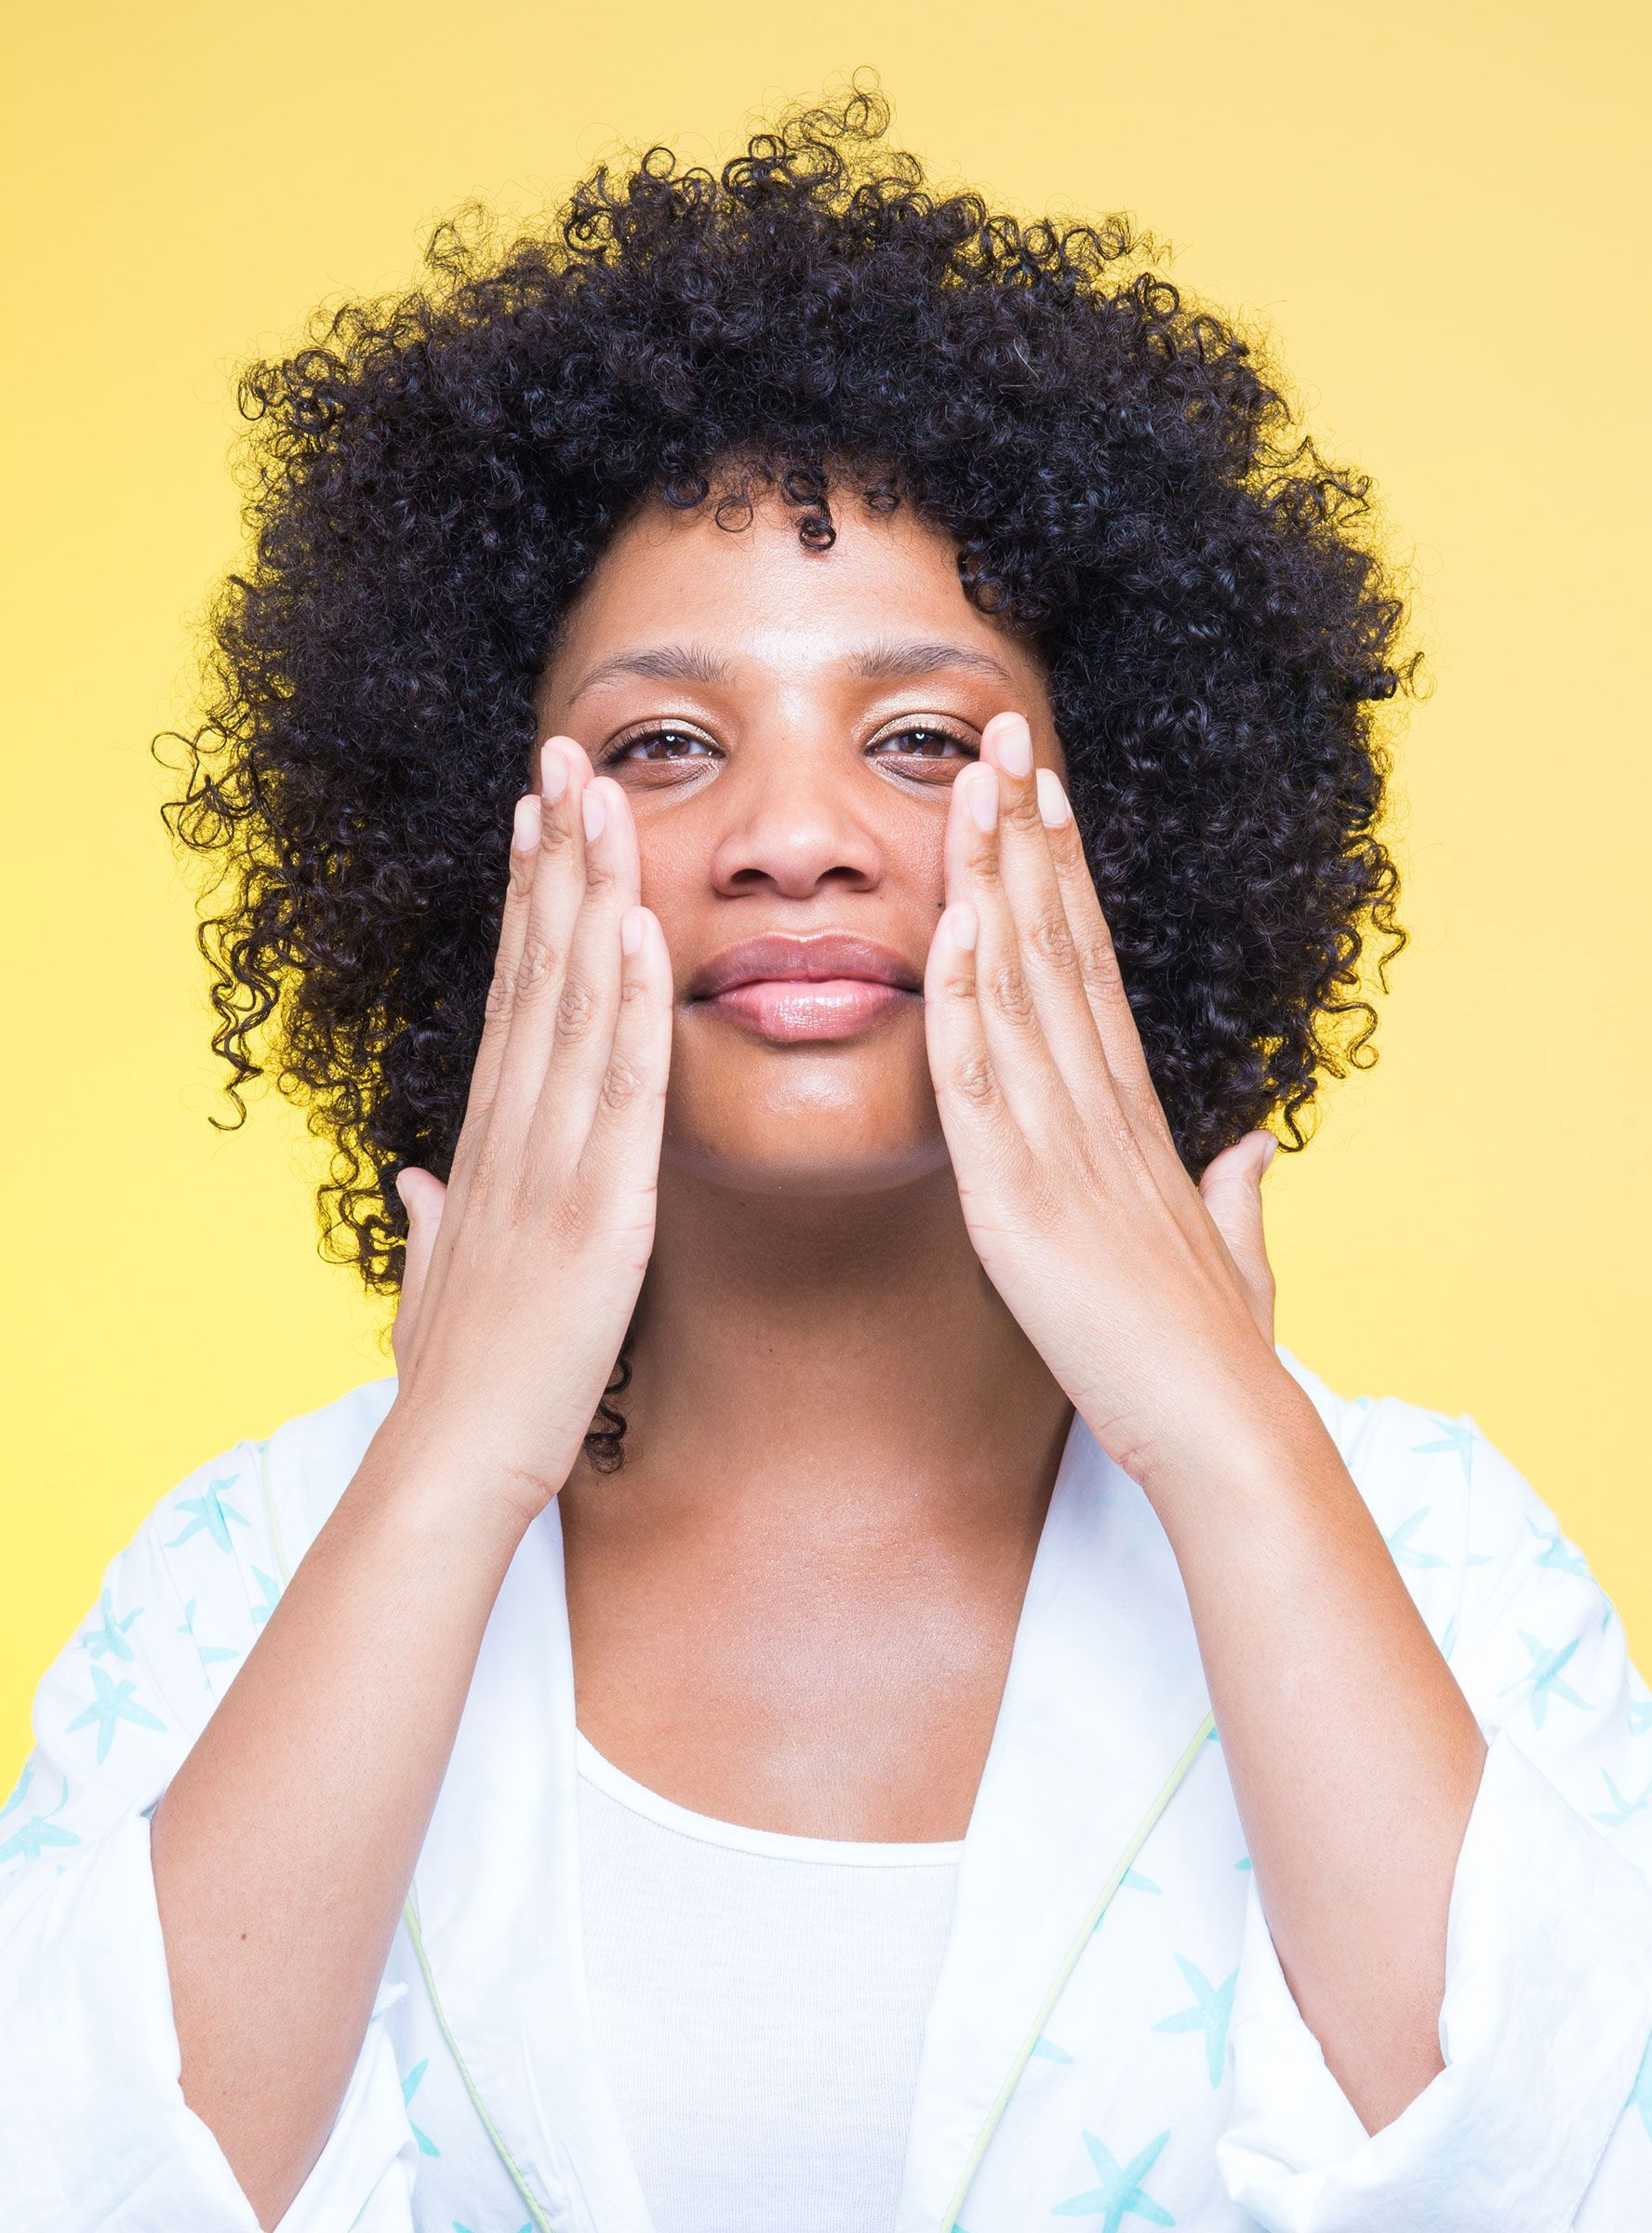 Exactly How To Apply Your Skin Care Skin care routine